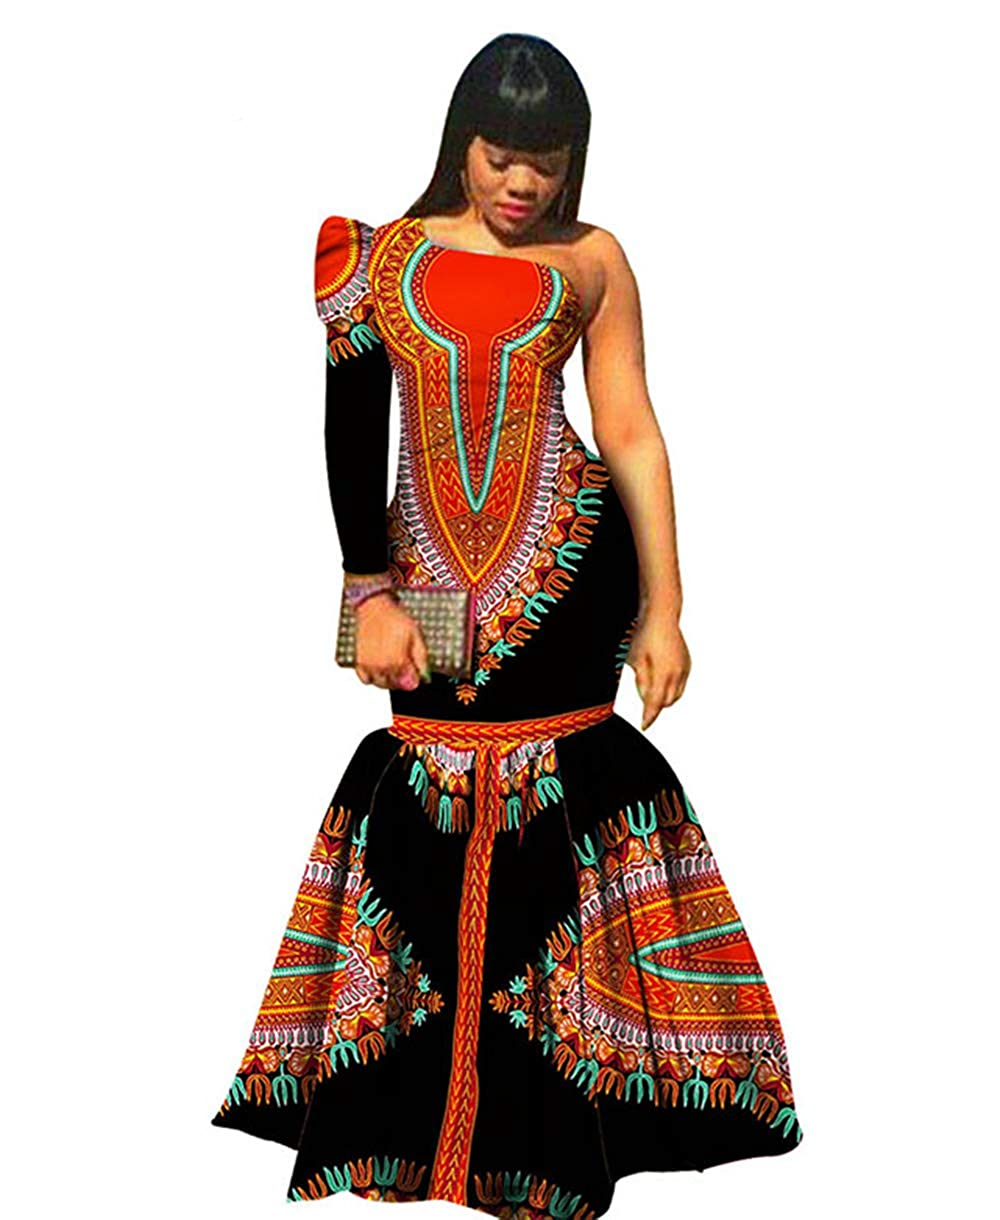 beb94f1c1d1b Amazon.com: Womens Prom Party One-Shoulder Dashiki Mermaid Dress African  Evening Gown: Clothing